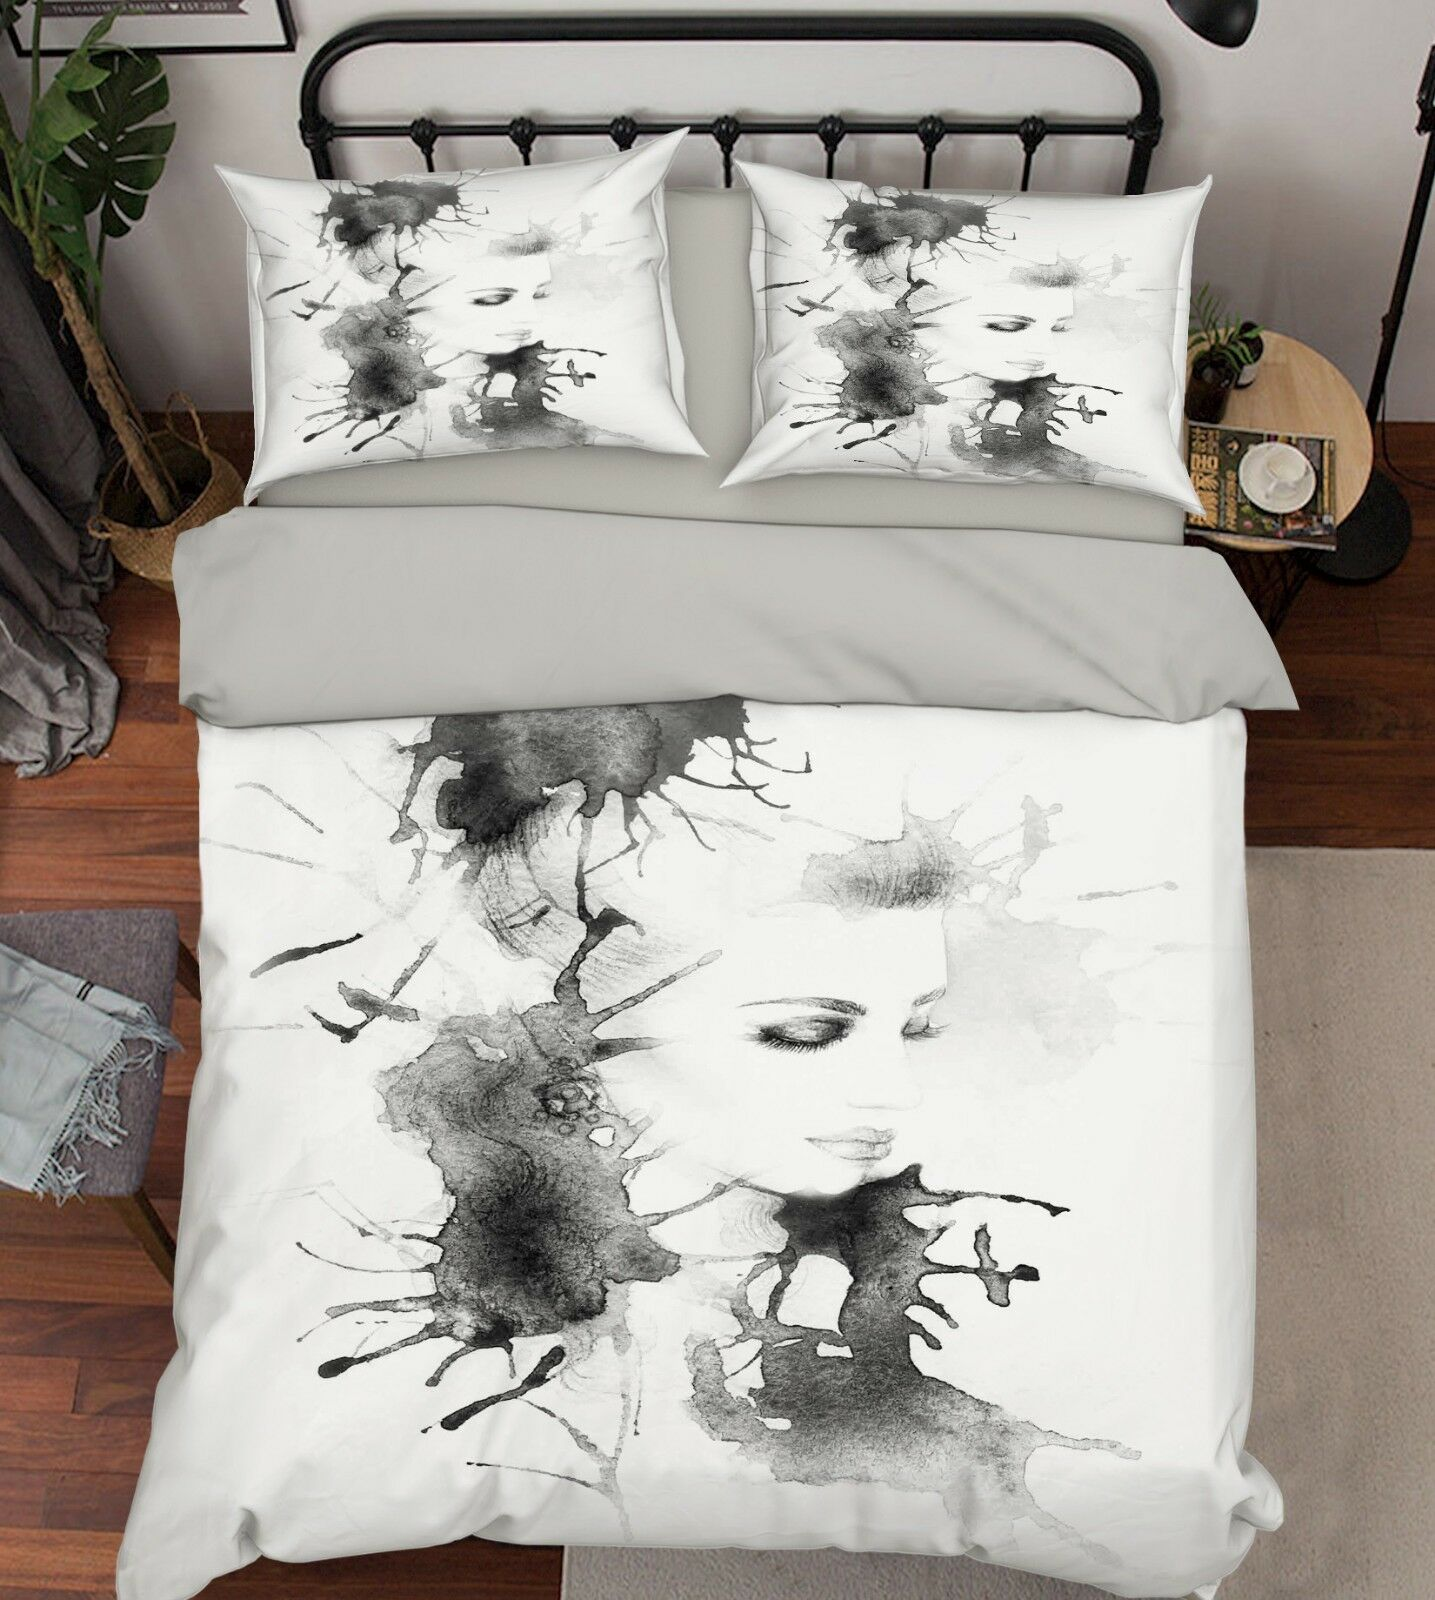 3D Ink Girl Art 87 Bed Pillowcases Quilt Duvet Cover Set Single Queen AU Carly